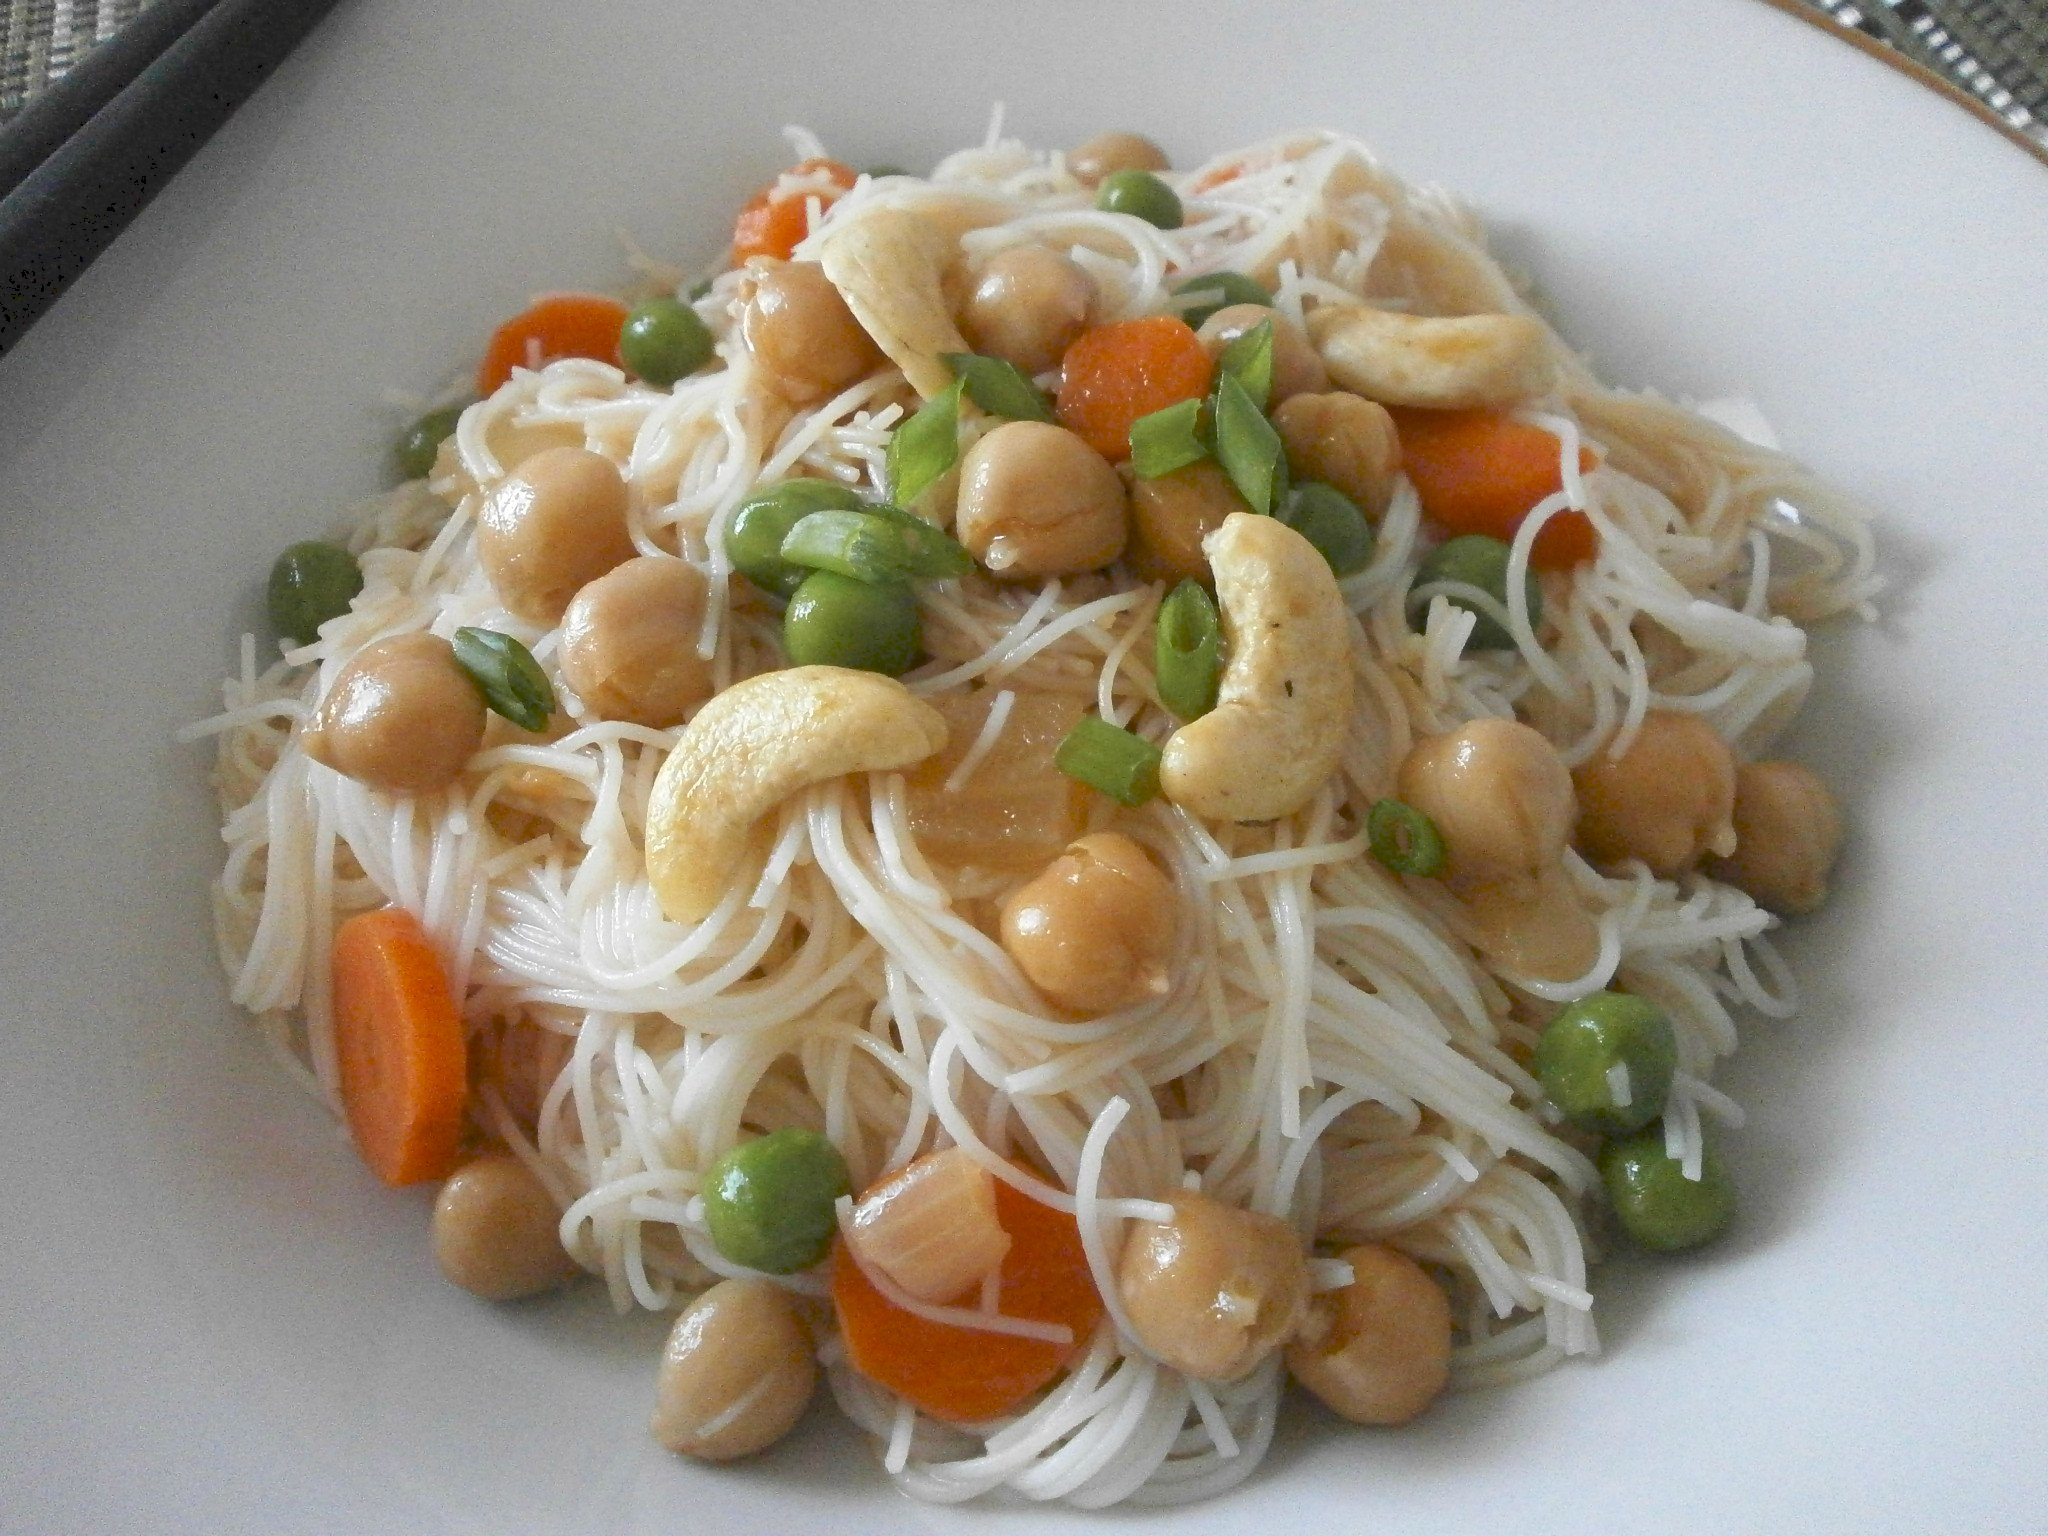 Vegetable Noodle Stir Fry with Chickpeas or Tofu | Swirls and Spice